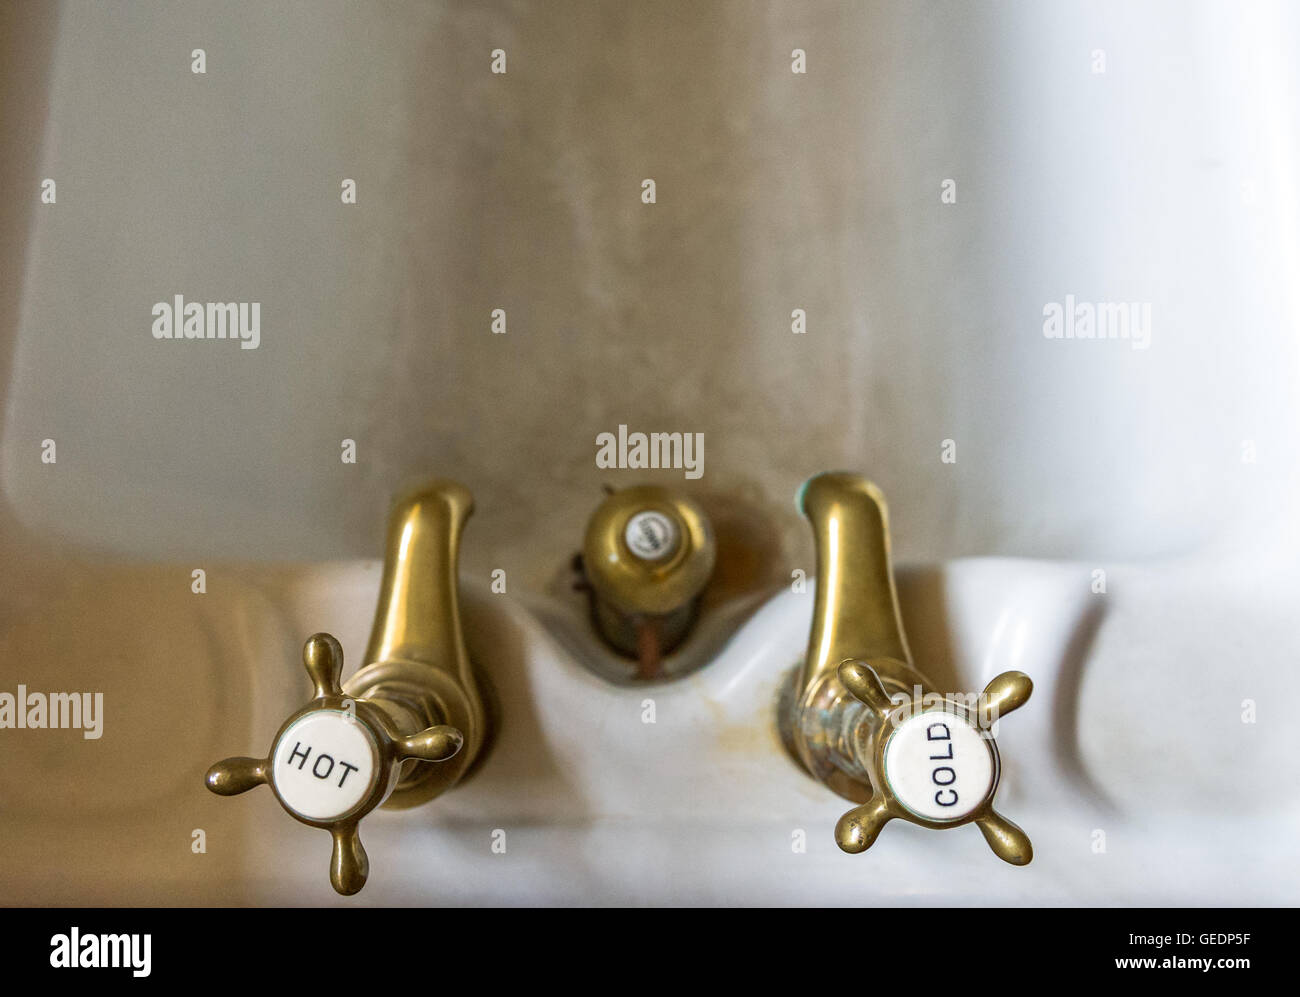 Victorian brass hot and cold water taps. - Stock Image